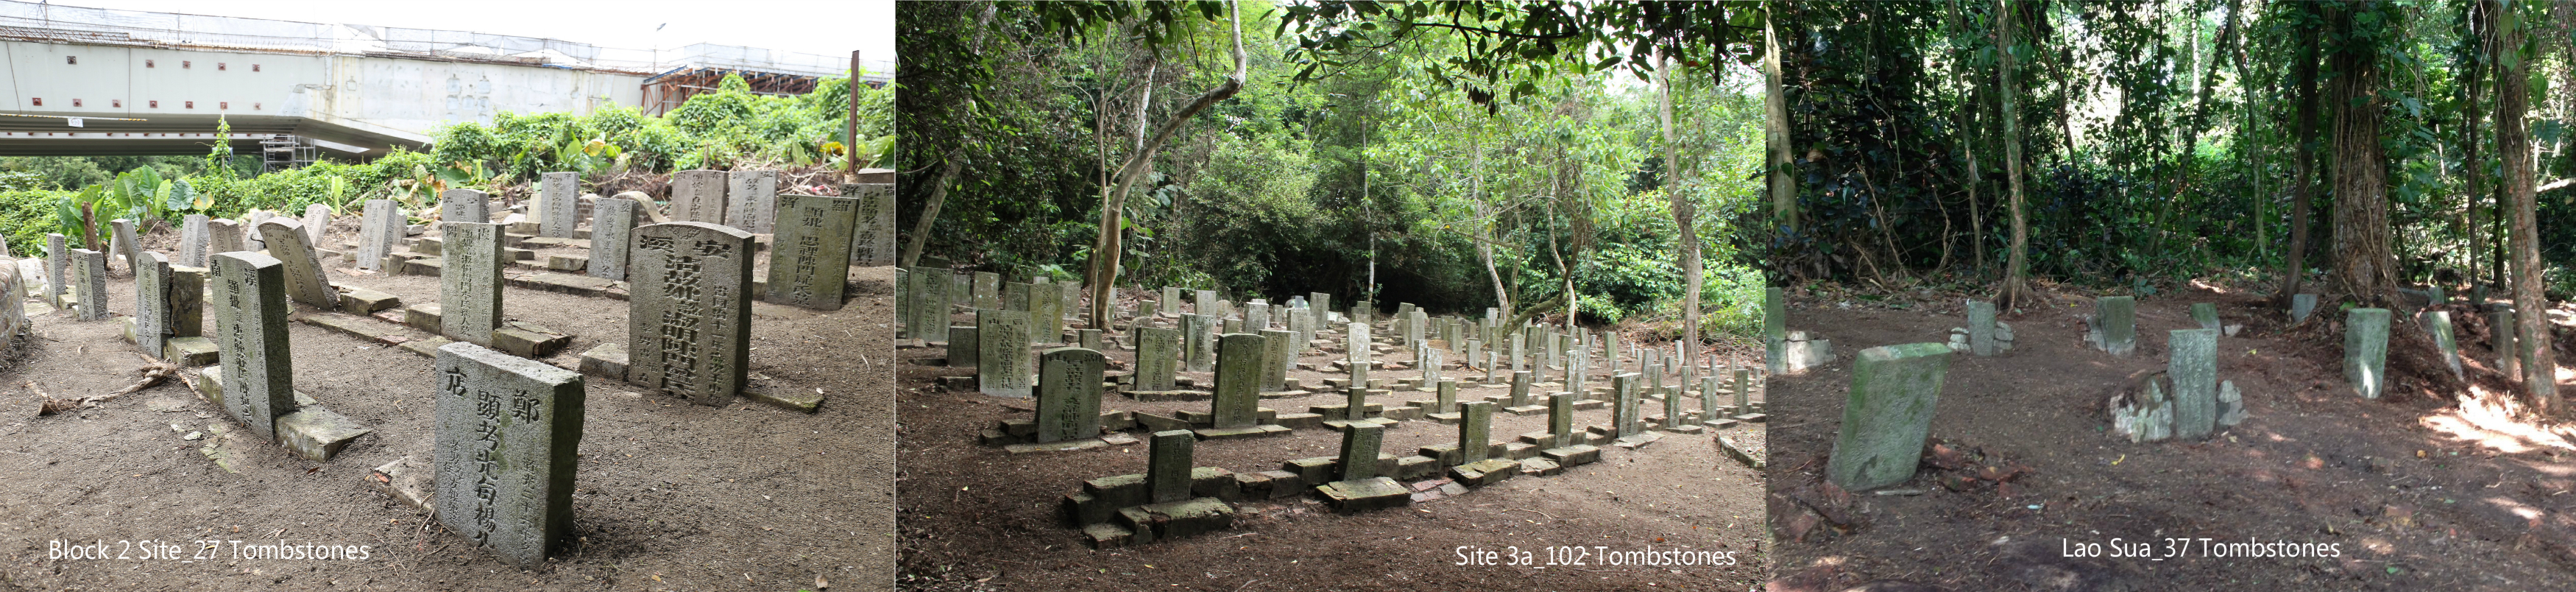 New Heng Shan Ting Cemetery